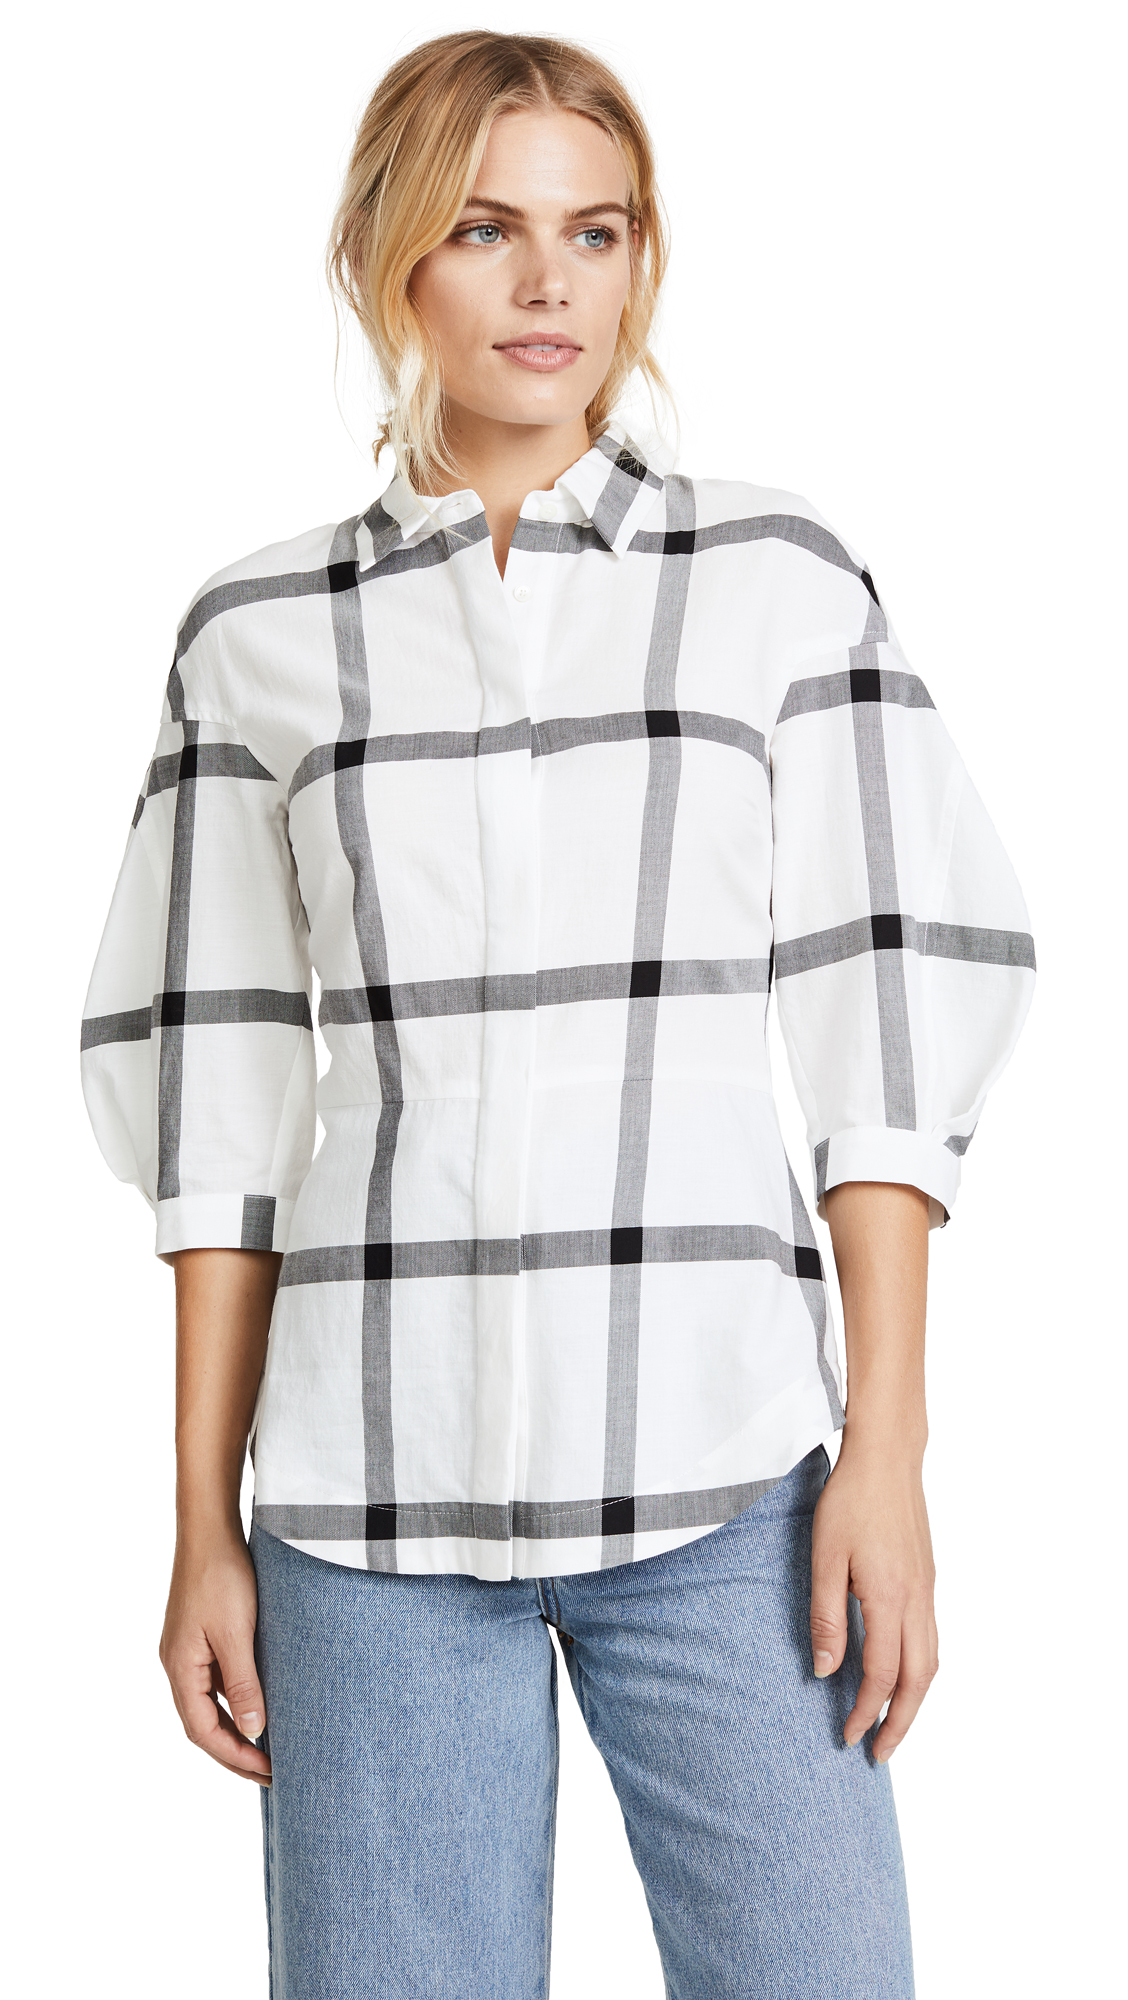 Derek Lam 10 Crosby Buttondown Shirt with Lace Up Back - Soft White